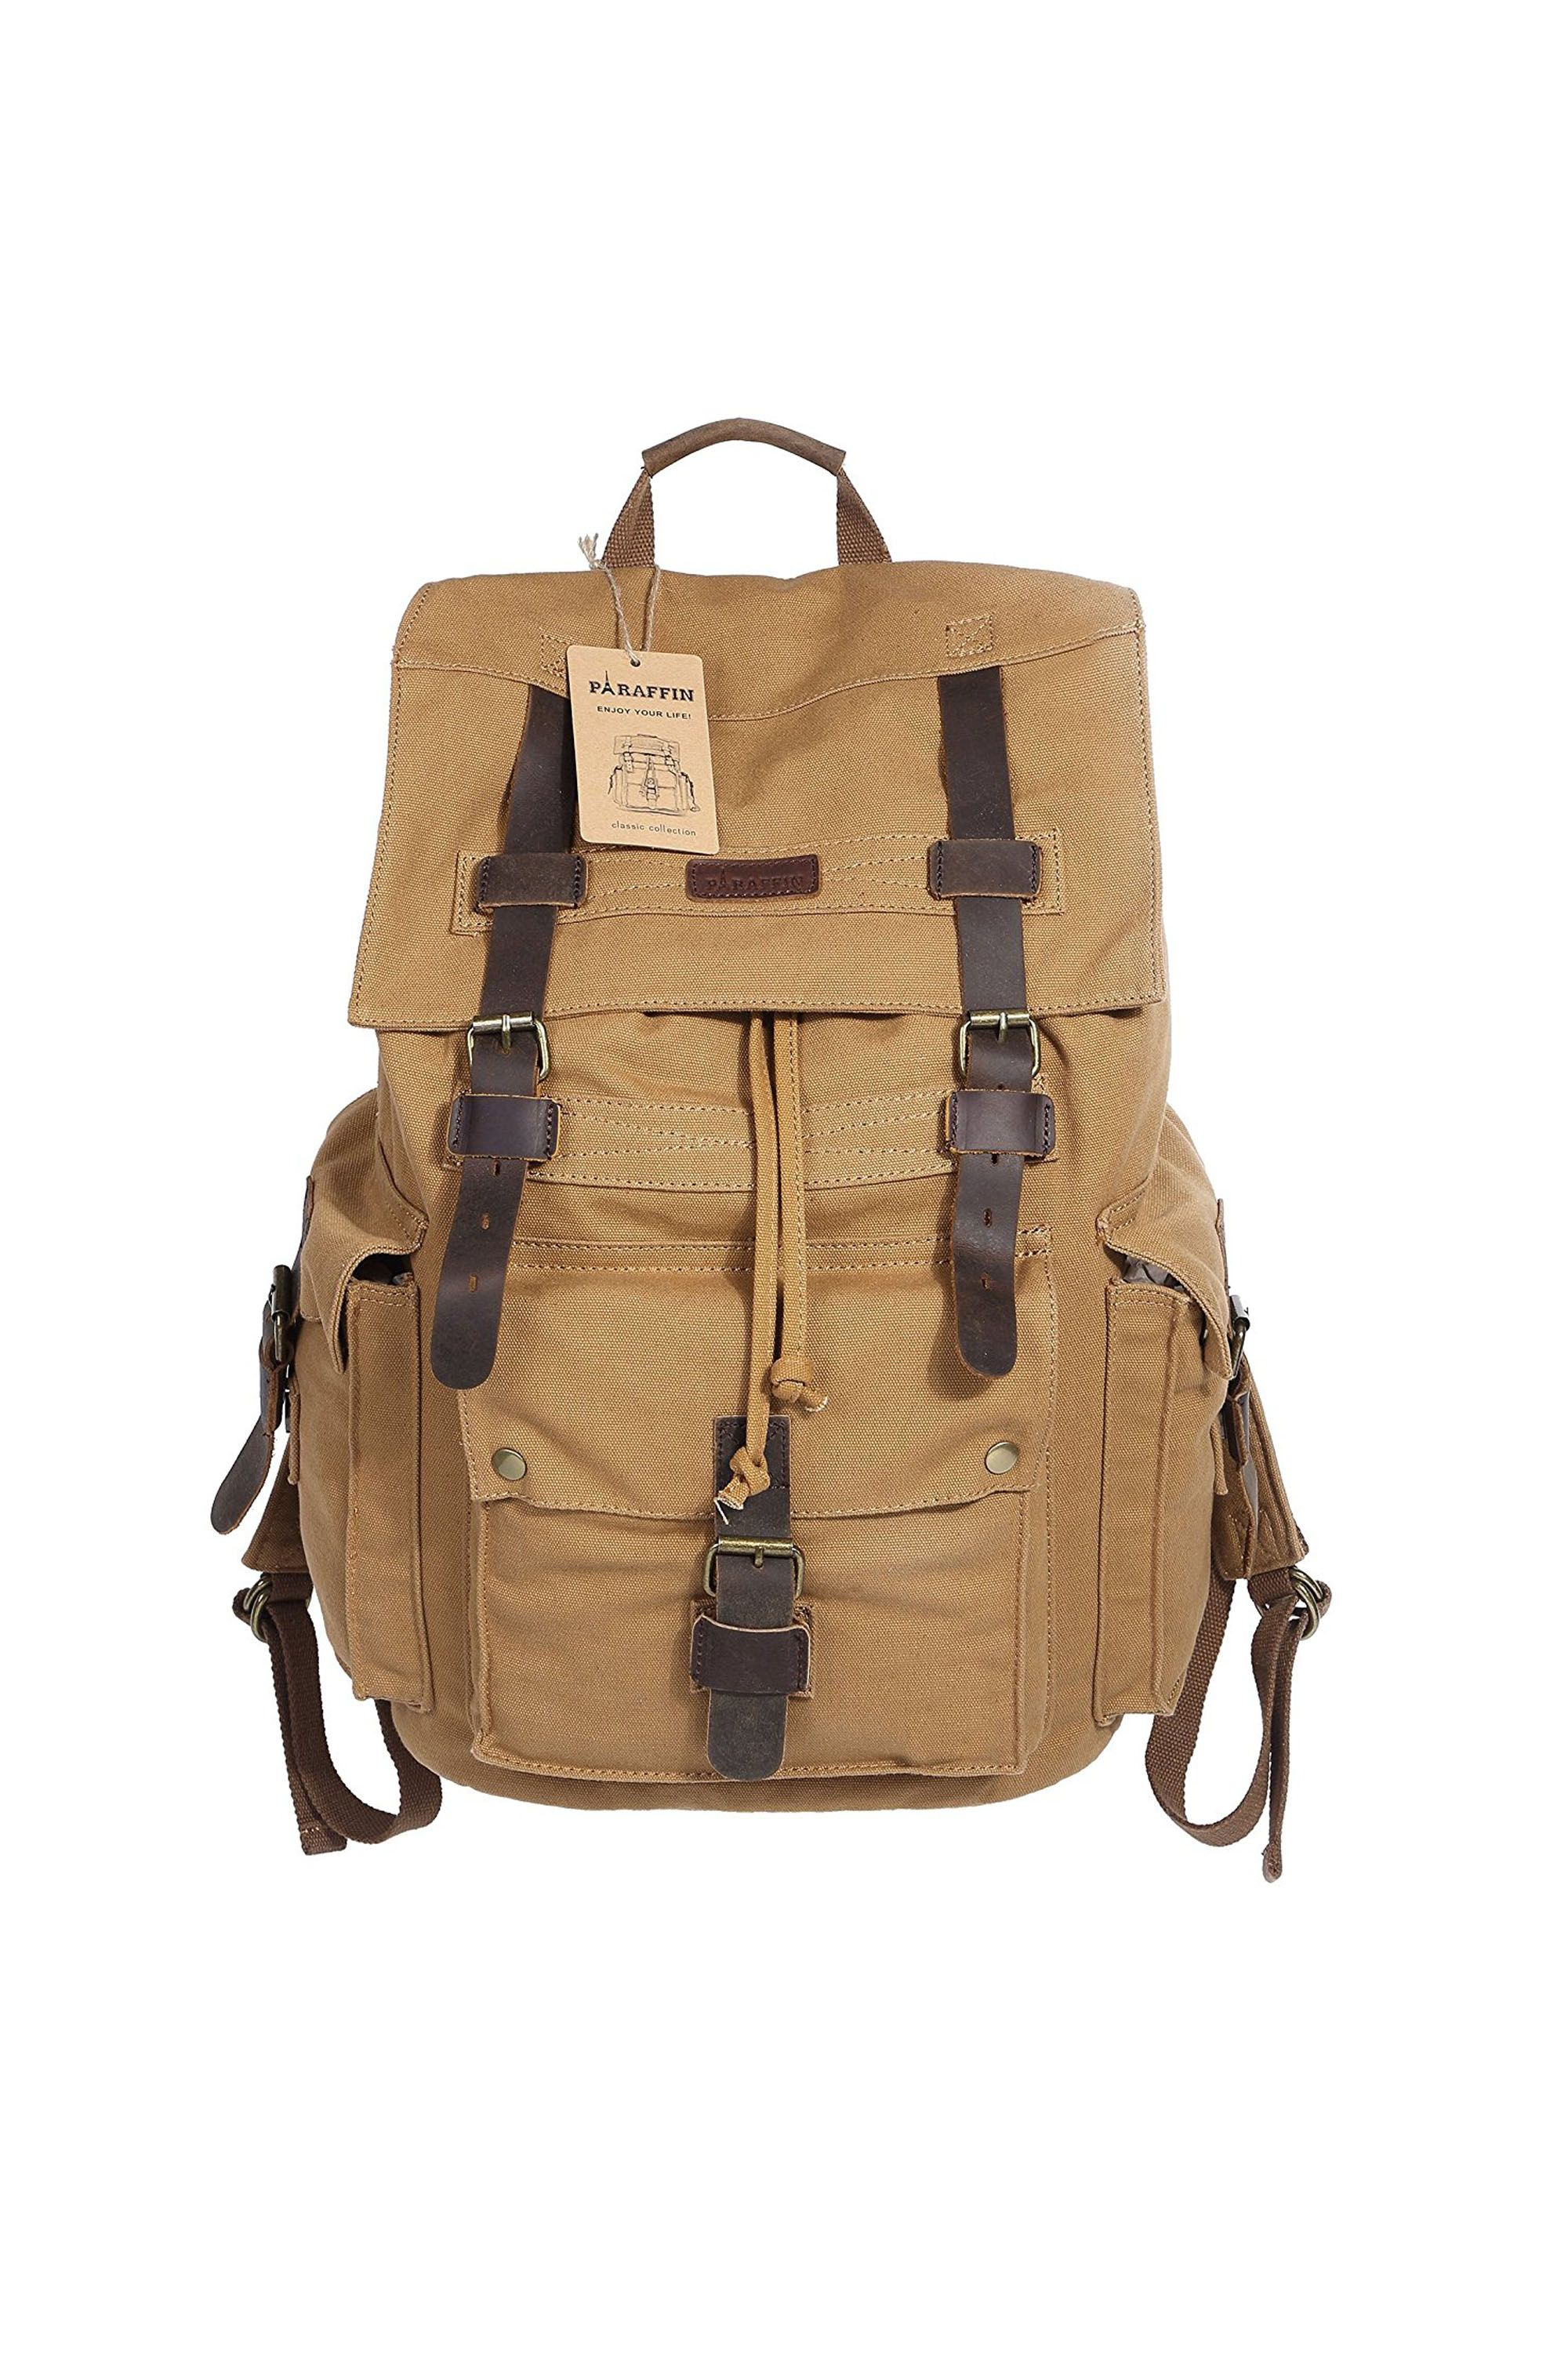 1f72b13abc North Face Backpack Canvas   Building Materials Bargain Center